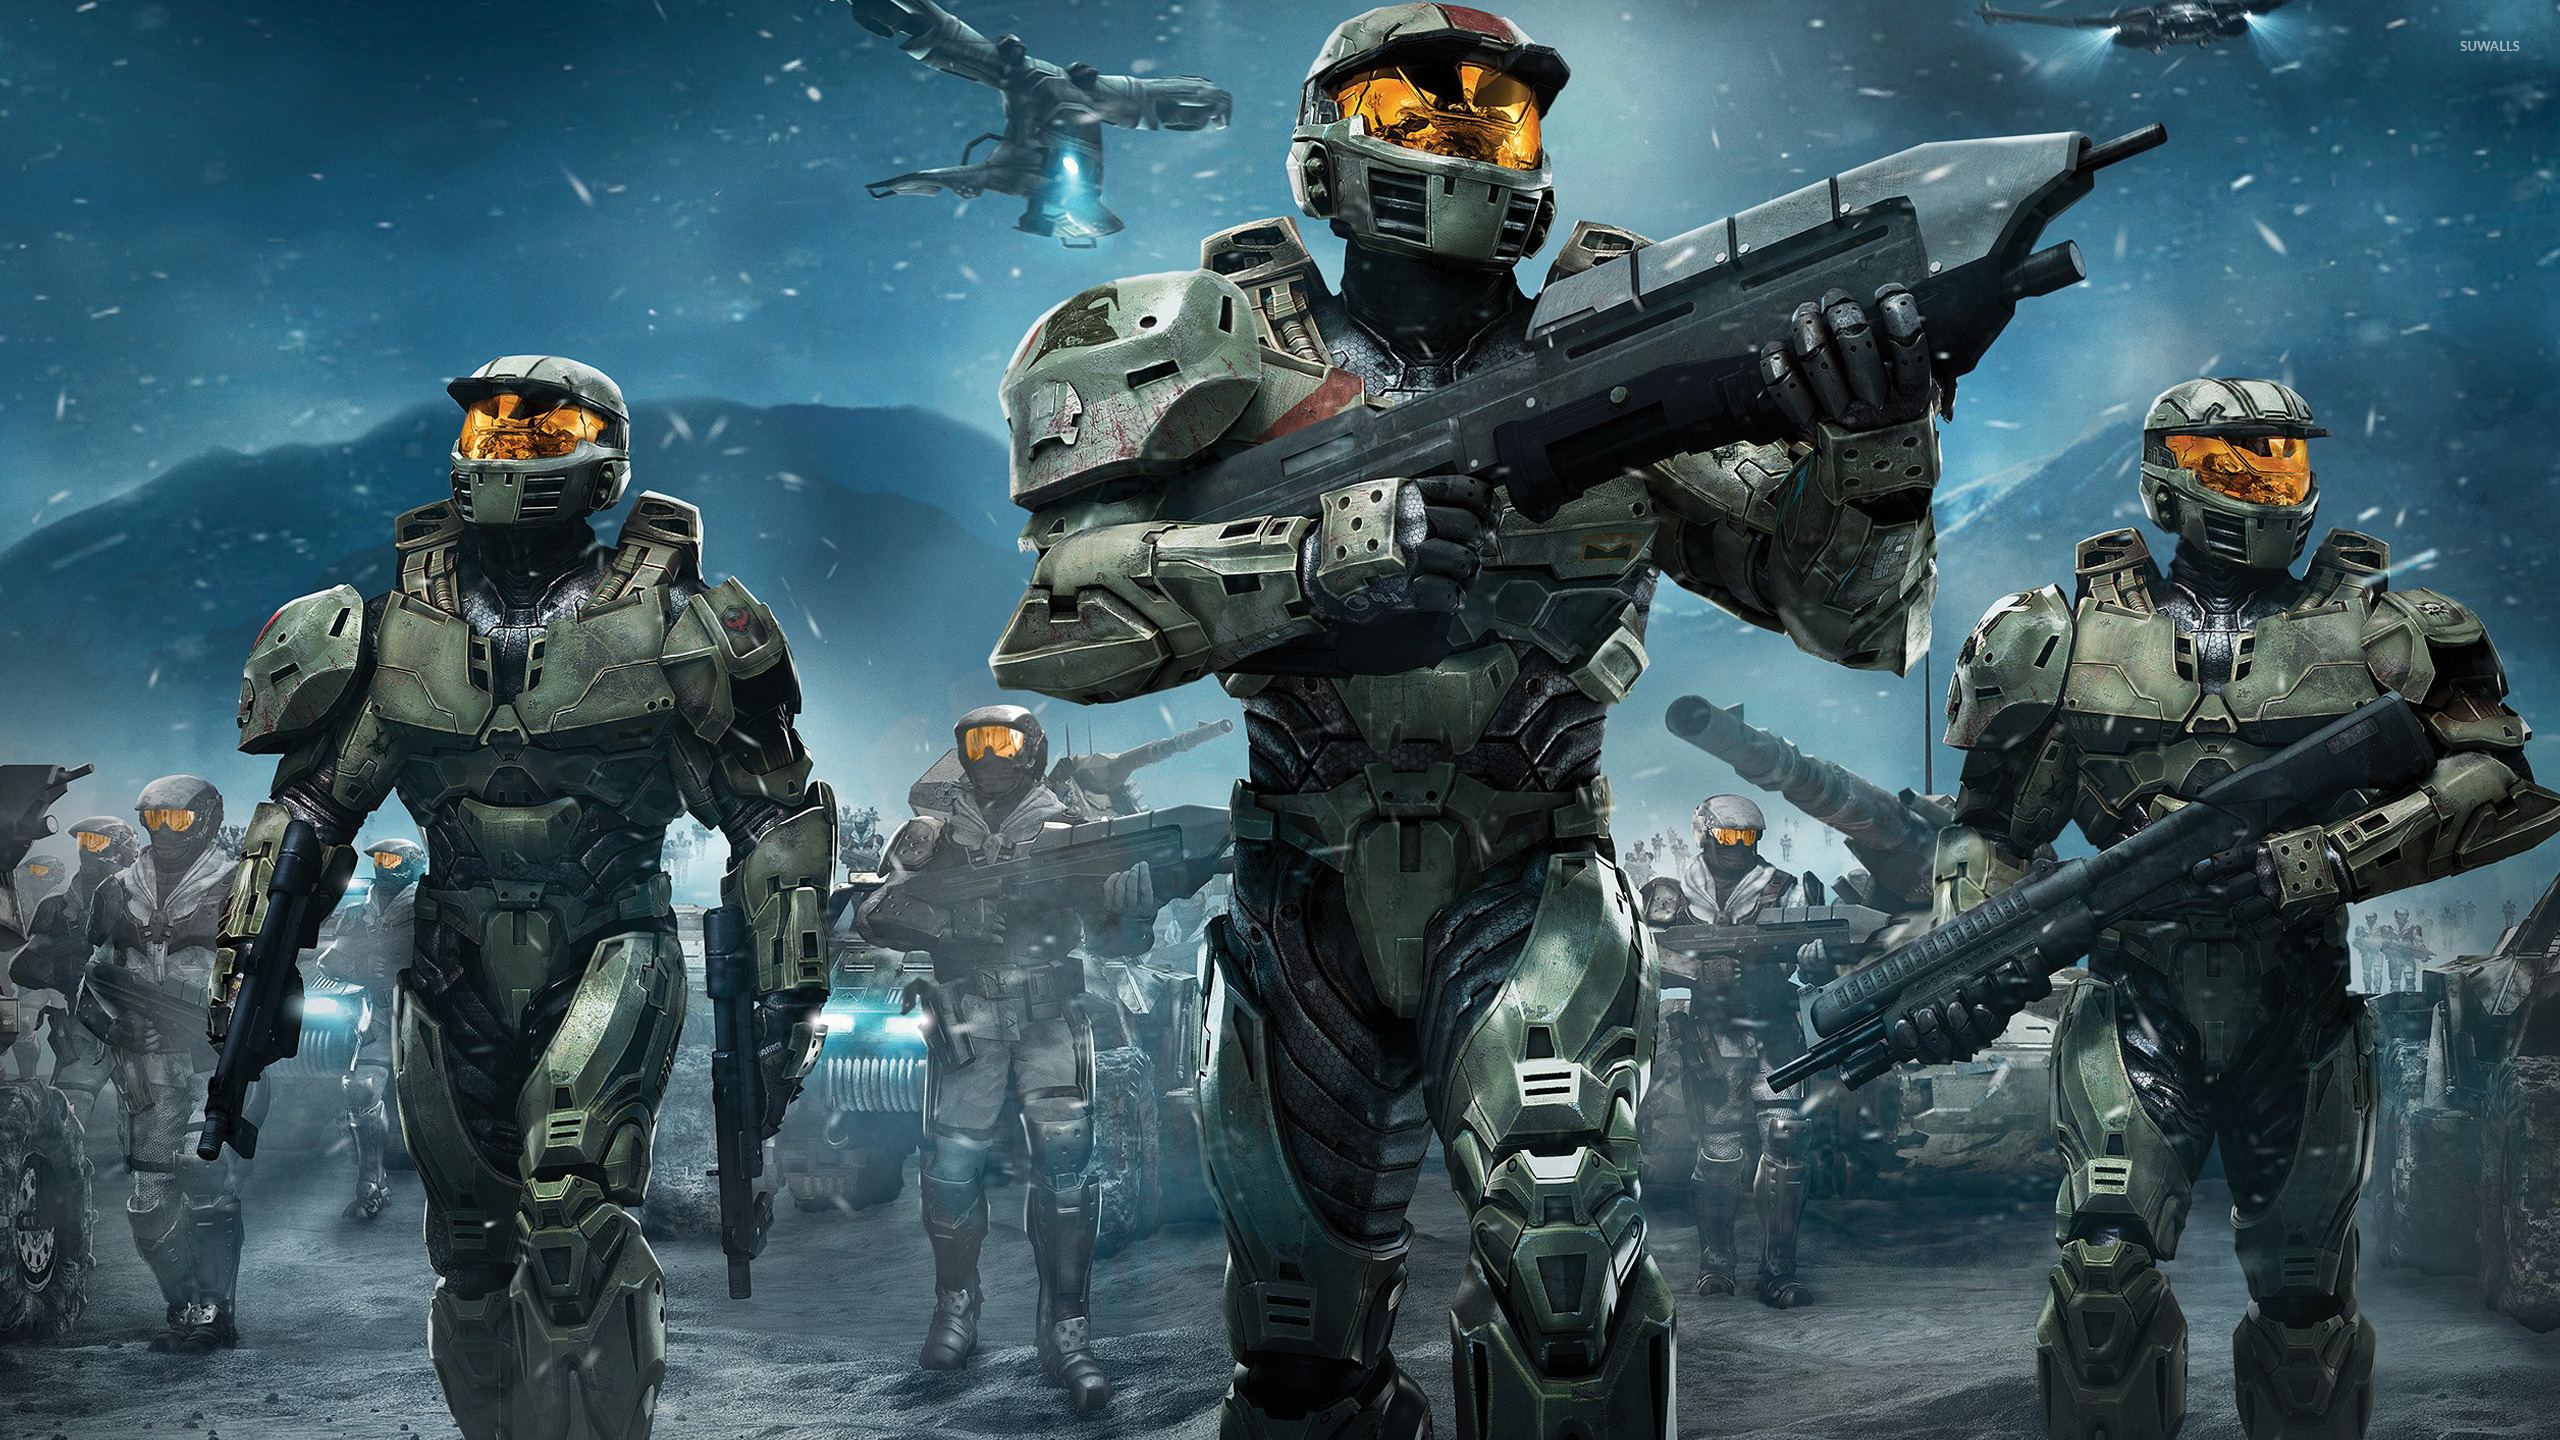 wallpaper free game halo - photo #17